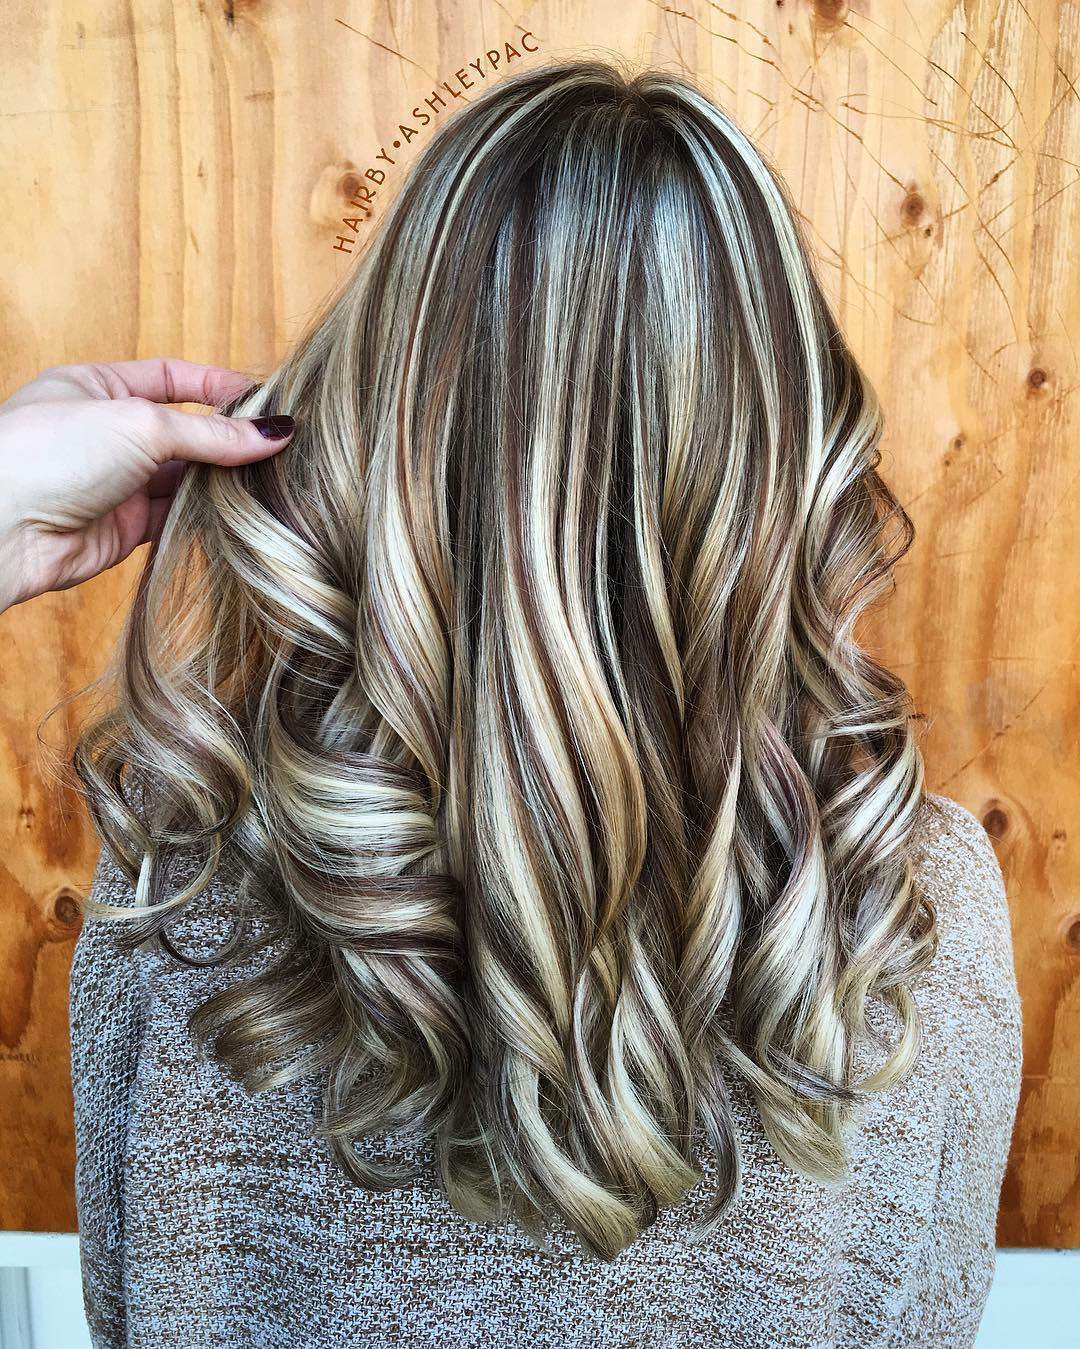 Hair color pictures highlights and lowlights trendy hairstyles hair color pictures highlights and lowlights pmusecretfo Choice Image